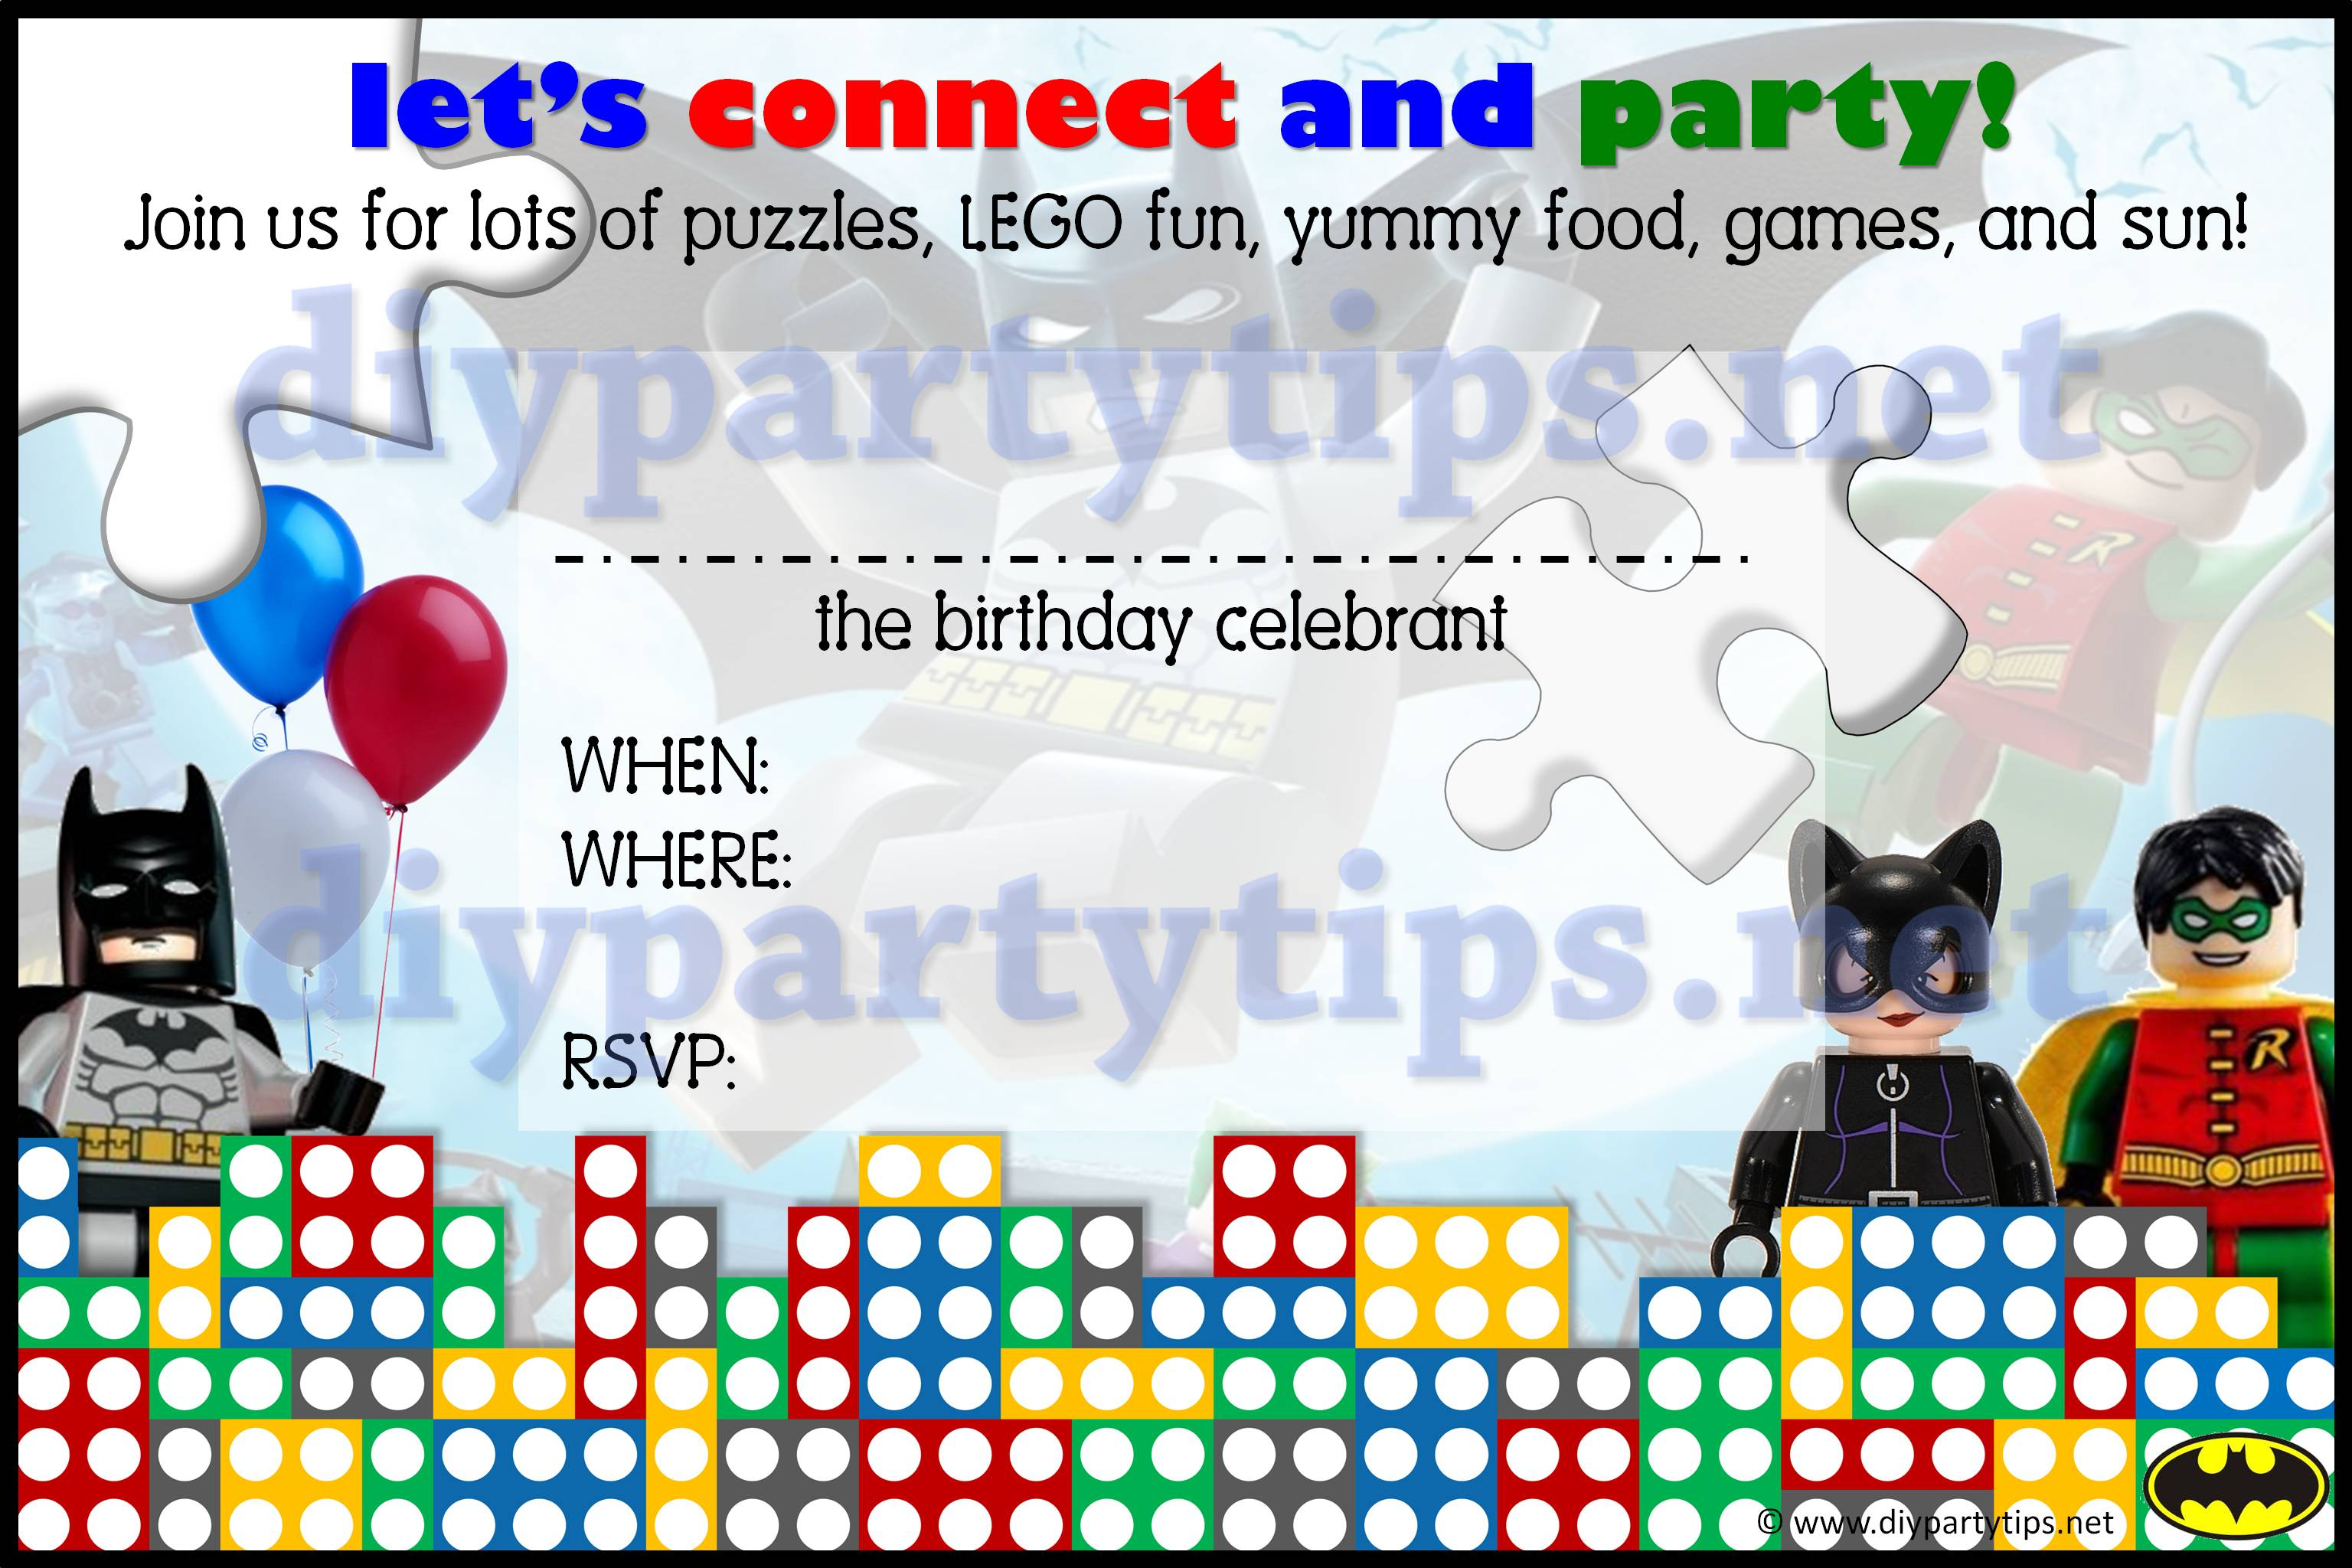 lego birthday invitation template lolas diy party tips watermark - Free Printable Invitation Templates